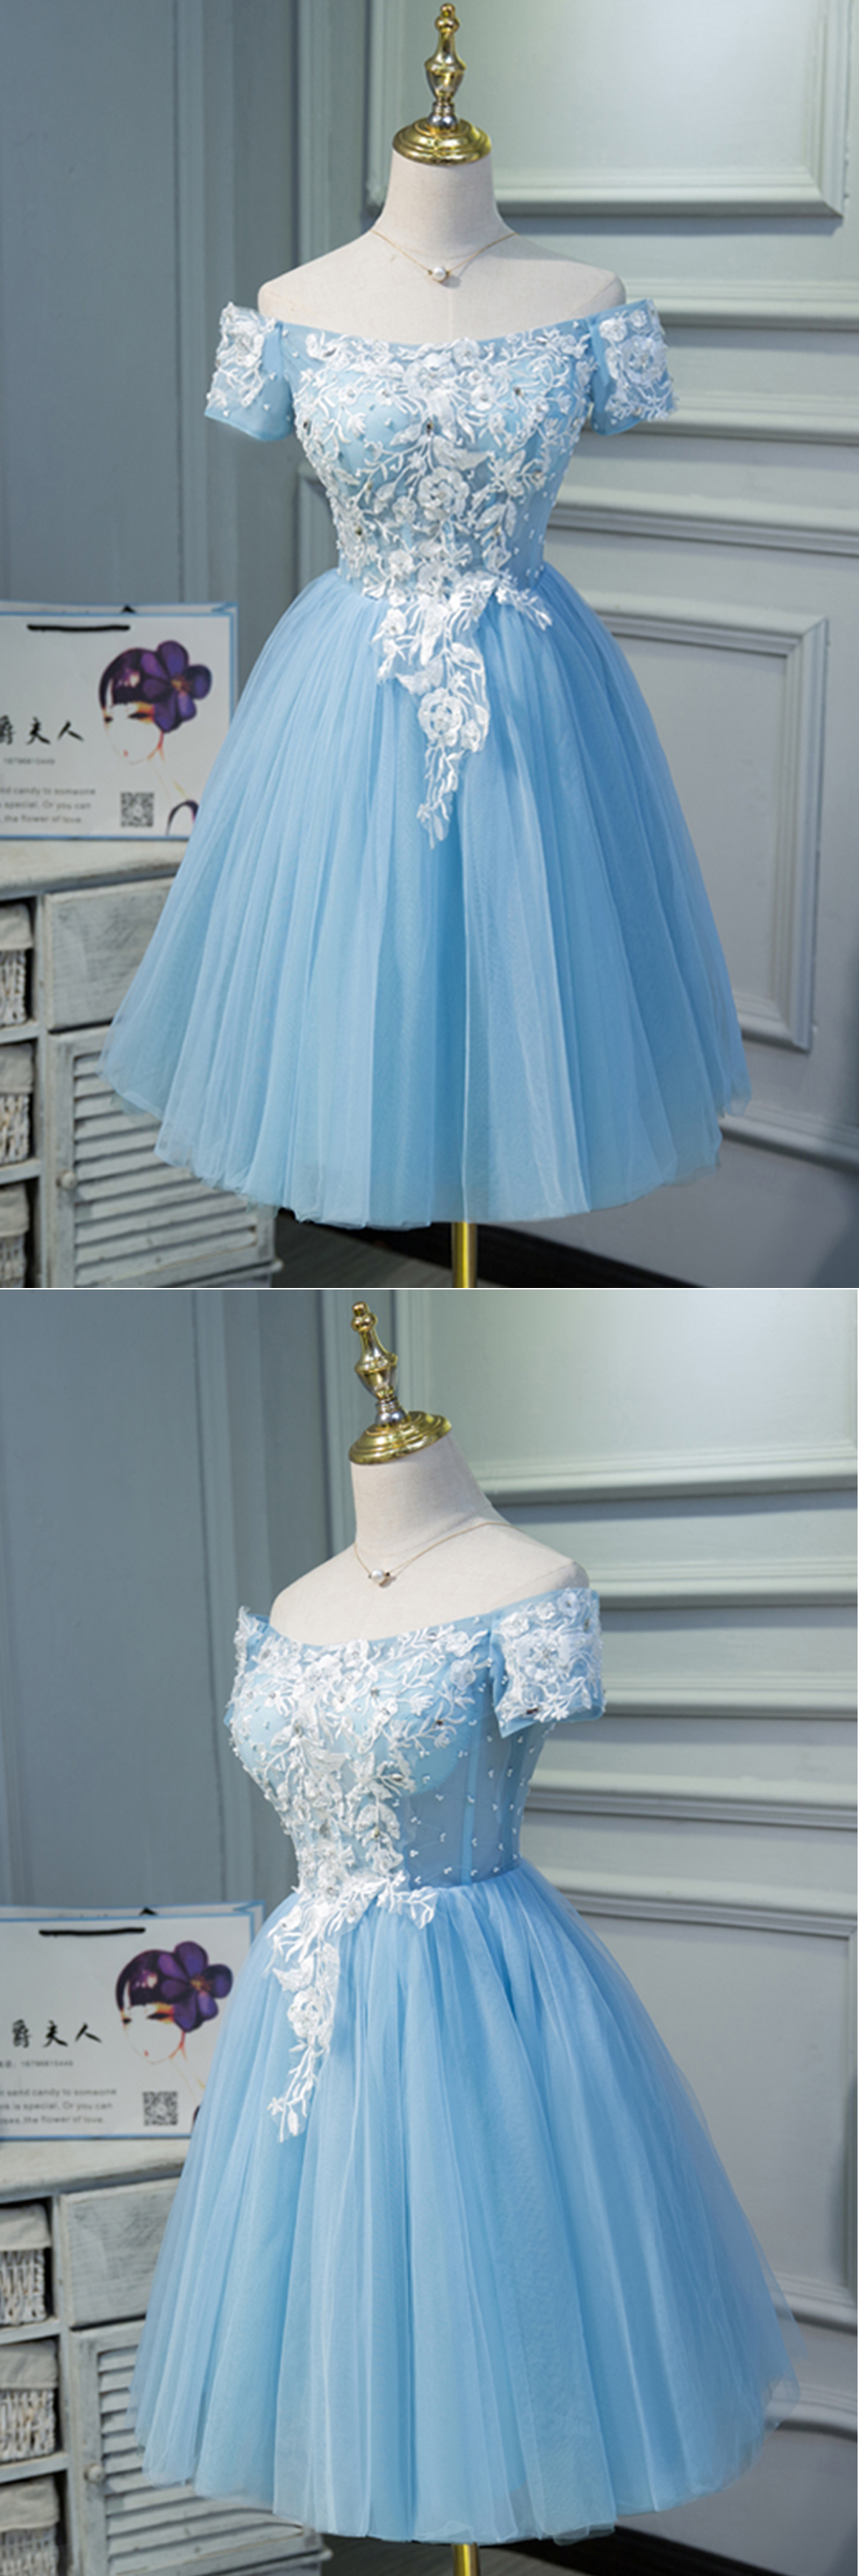 Cute blue tulle off shoulder knee length homecoming dress ...